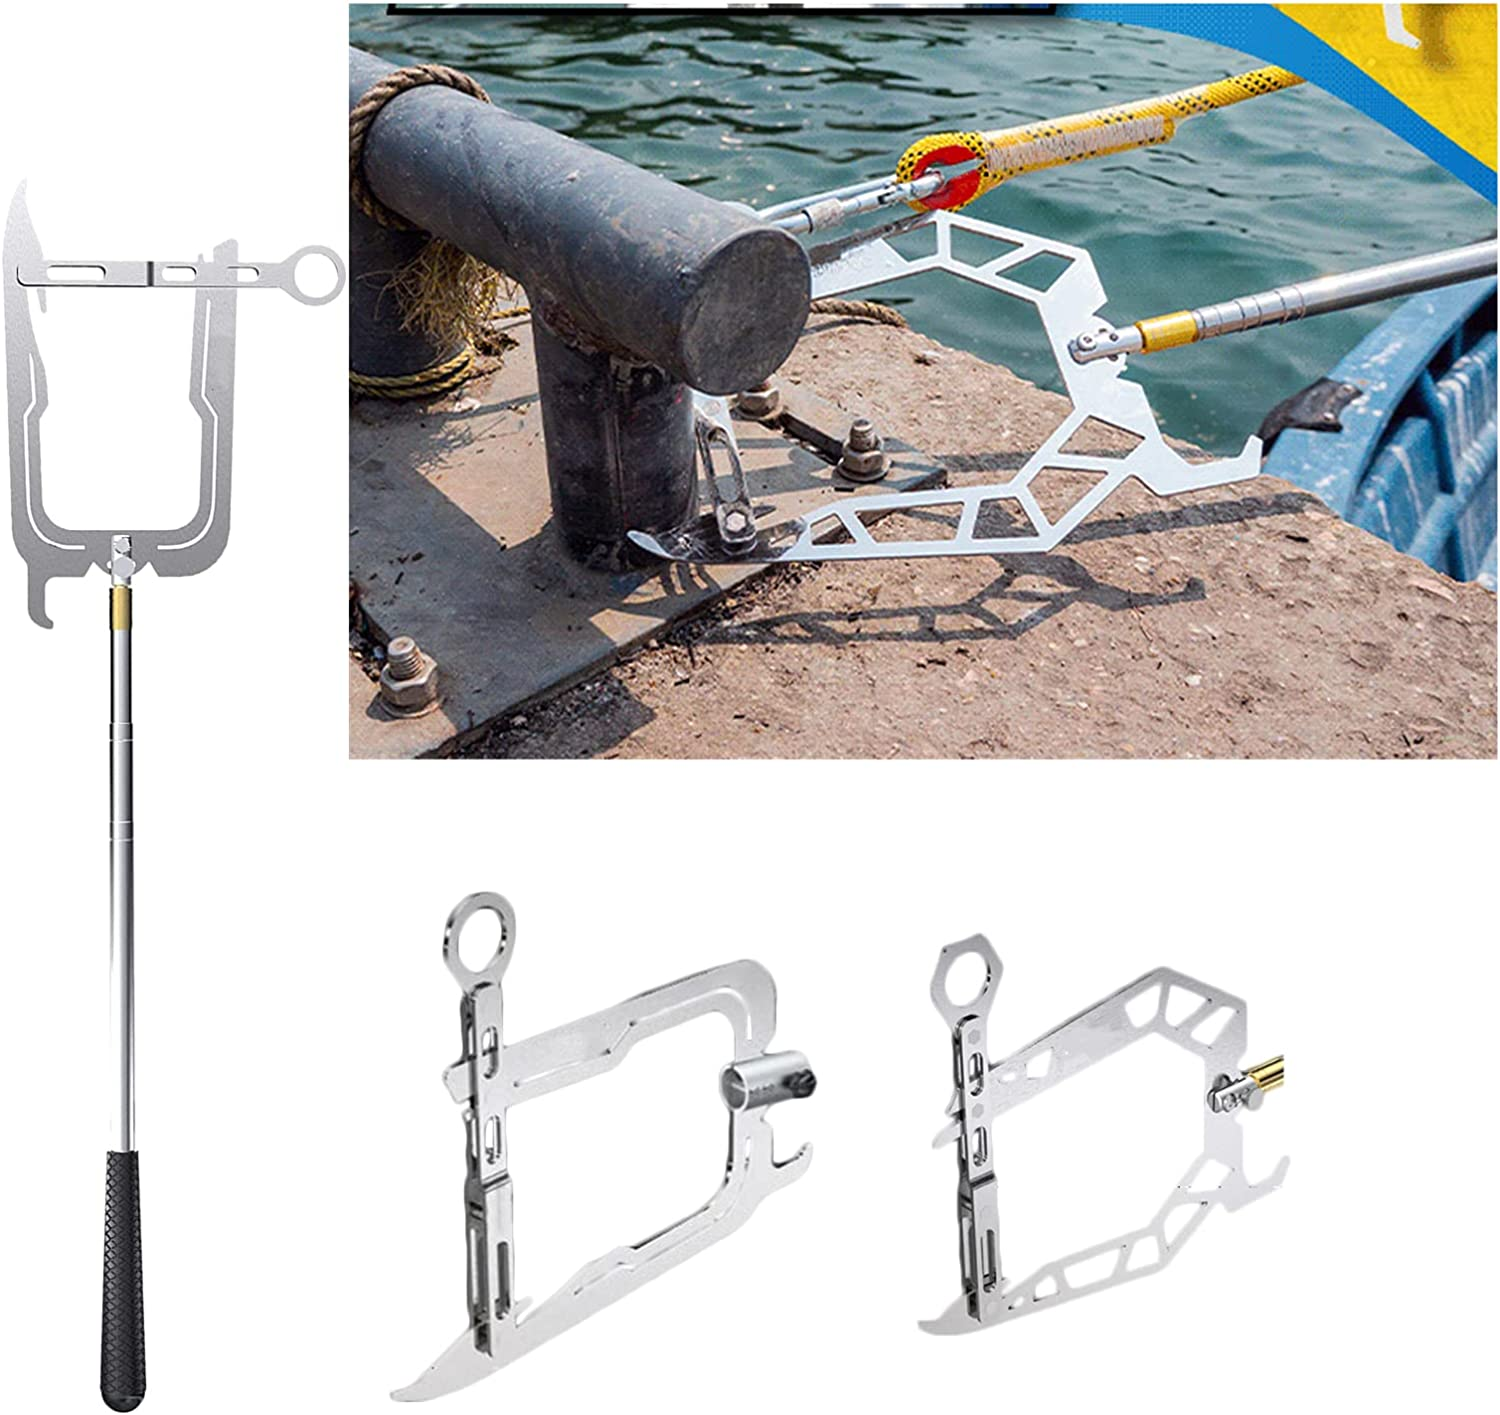 KUAILEY The Telescoping Easy Long-Distance Boat - Threader H Max 73% OFF Max 56% OFF